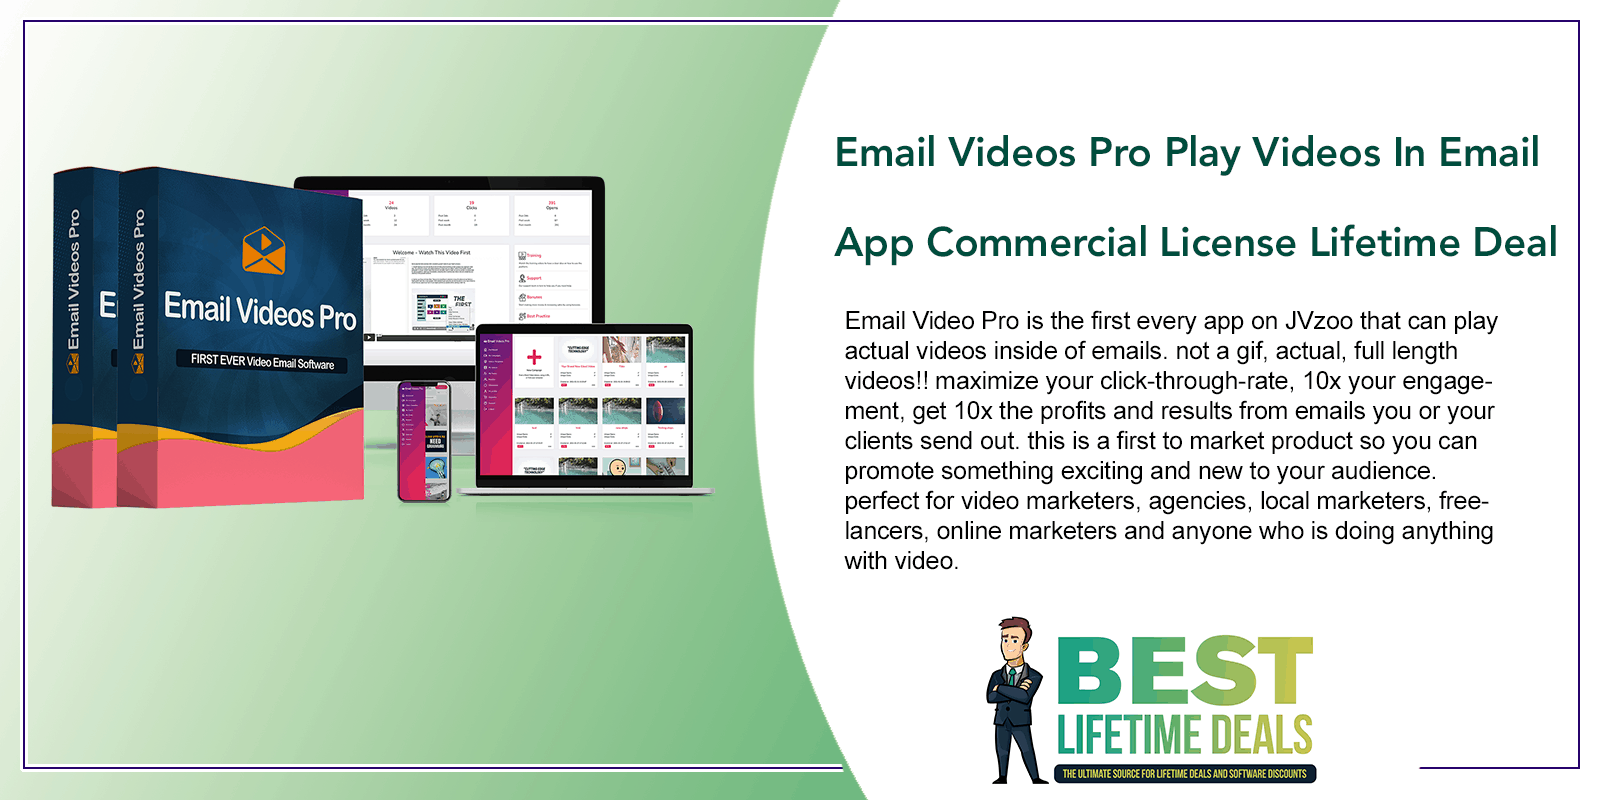 Email Videos Pro Play Videos In Email App Featured Image